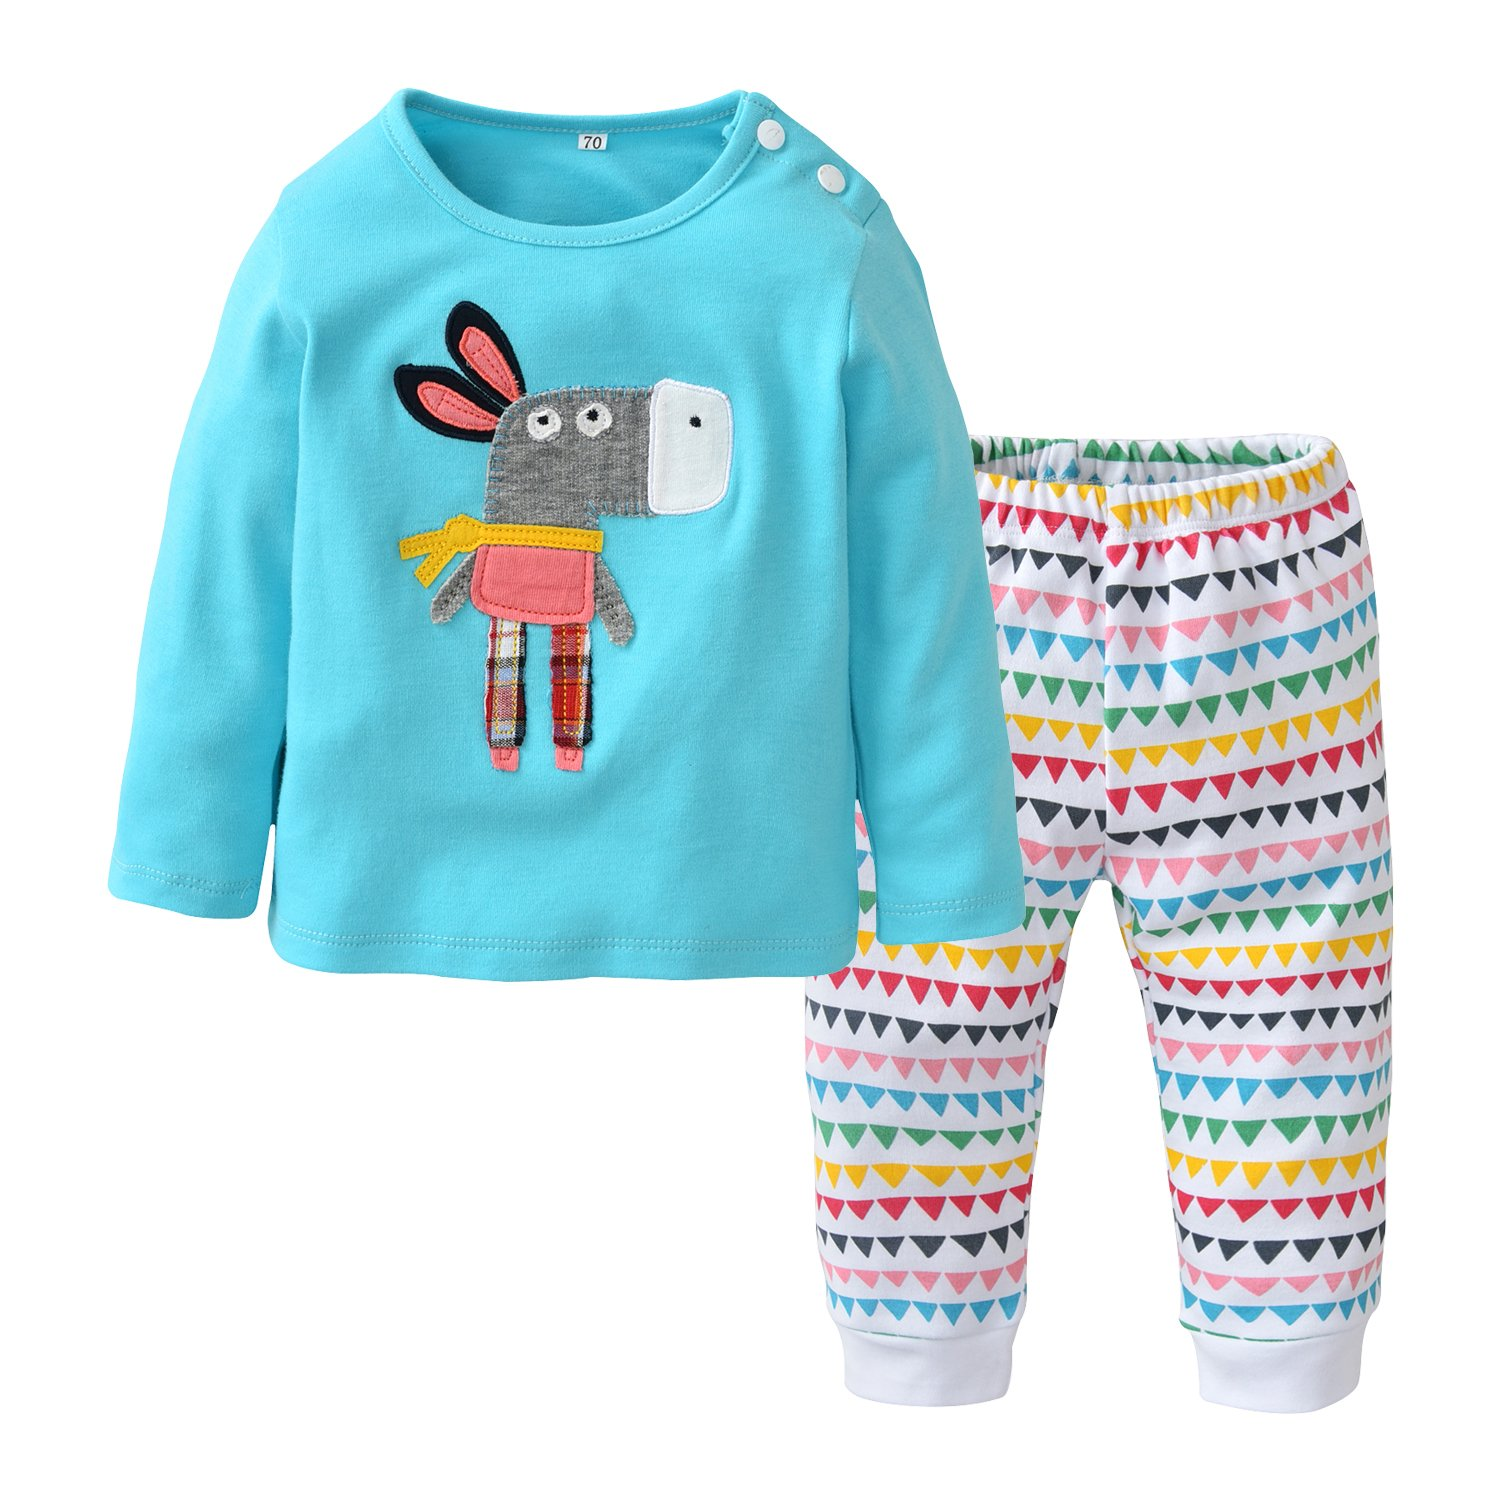 2Pcs/Set Baby Girl Boy Long Sleeve Cartoon Donkey Tops Pants Outfits Clothes Set